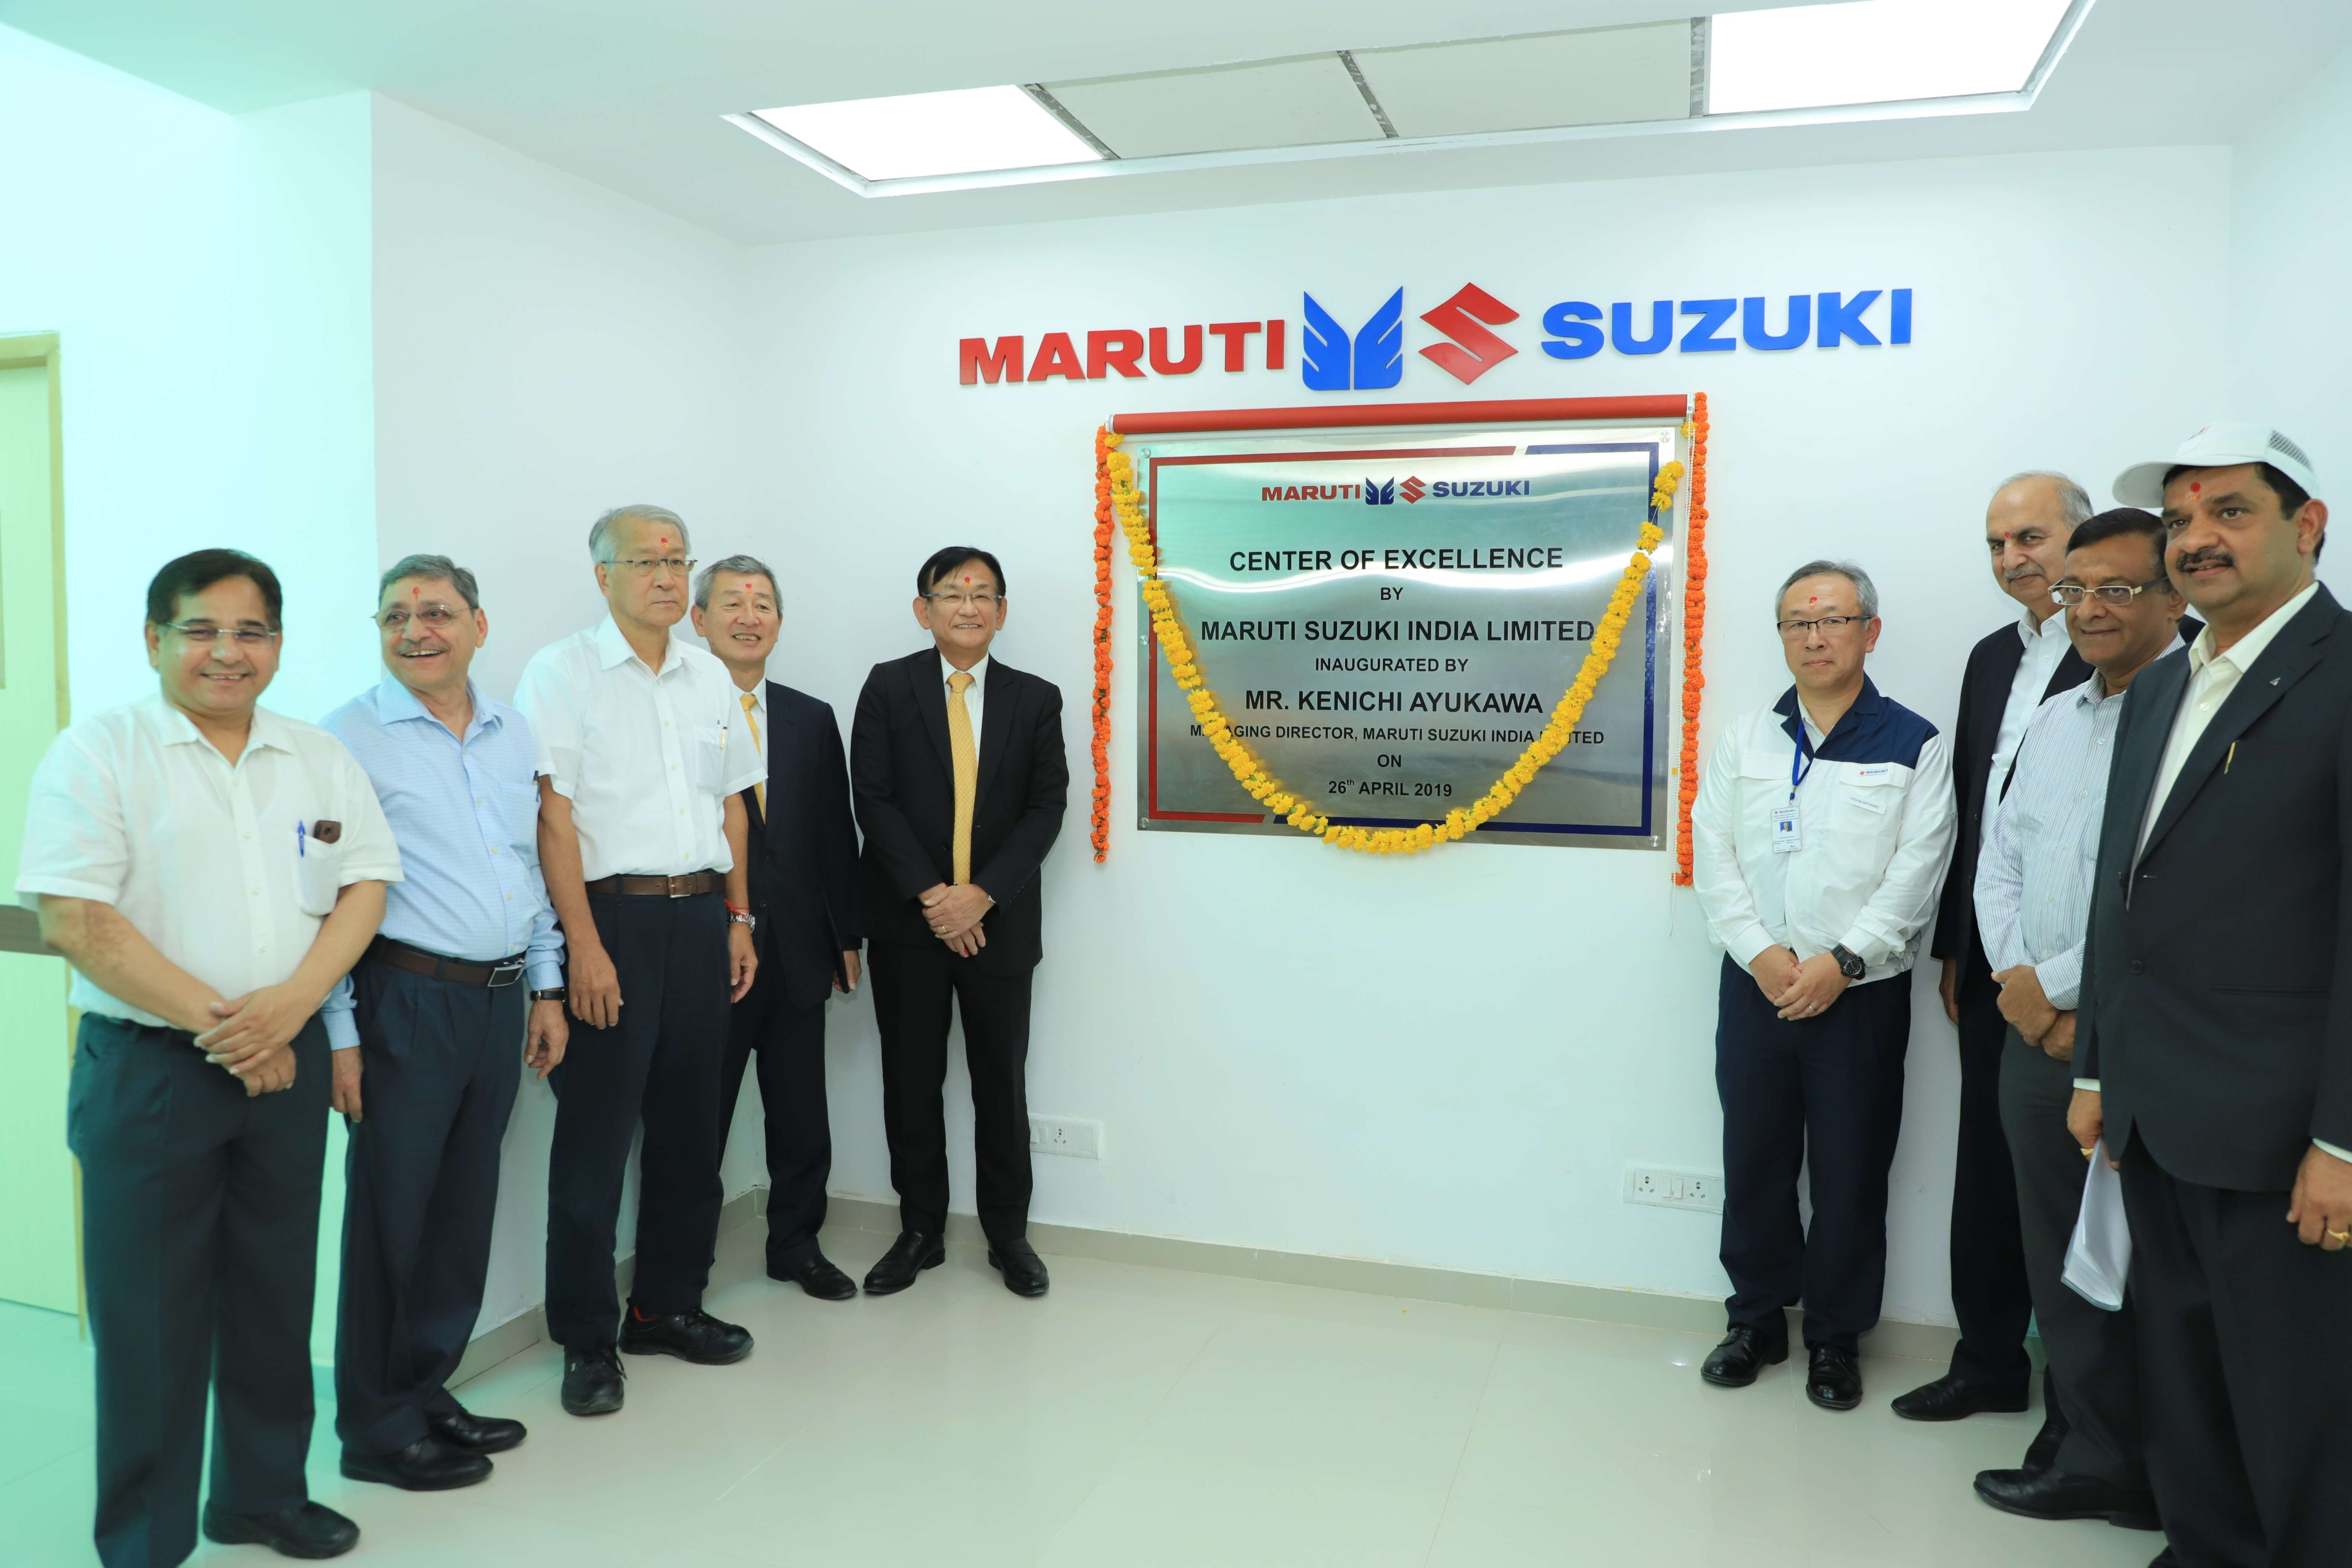 Maruti Suzuki Vendors Maruti Suzuki Opens Center Of Excellence At Iti Becharaji In Gujarat Auto News Et Auto